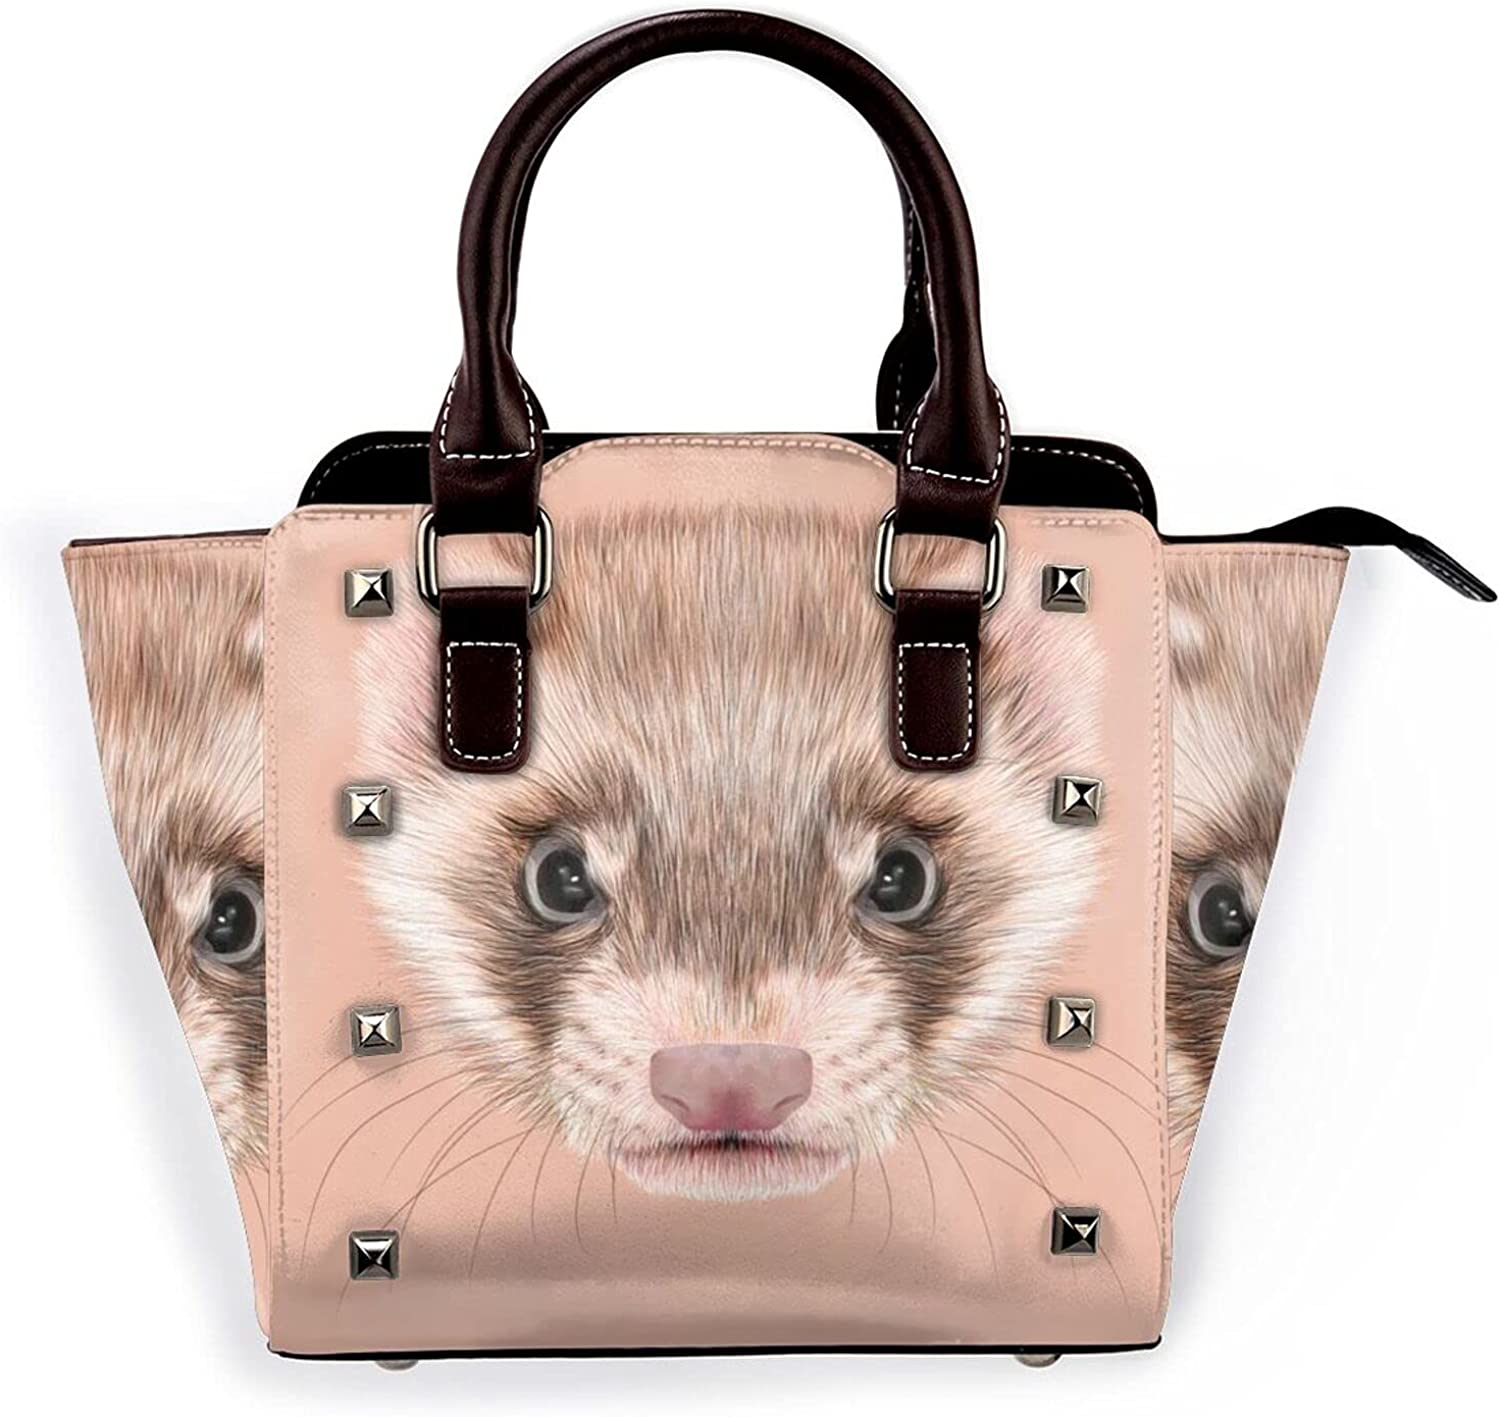 Ferret Brown Face Leather Rivet Micro New Orleans Mall Purse Indianapolis Mall Handbag Shoulder Bag